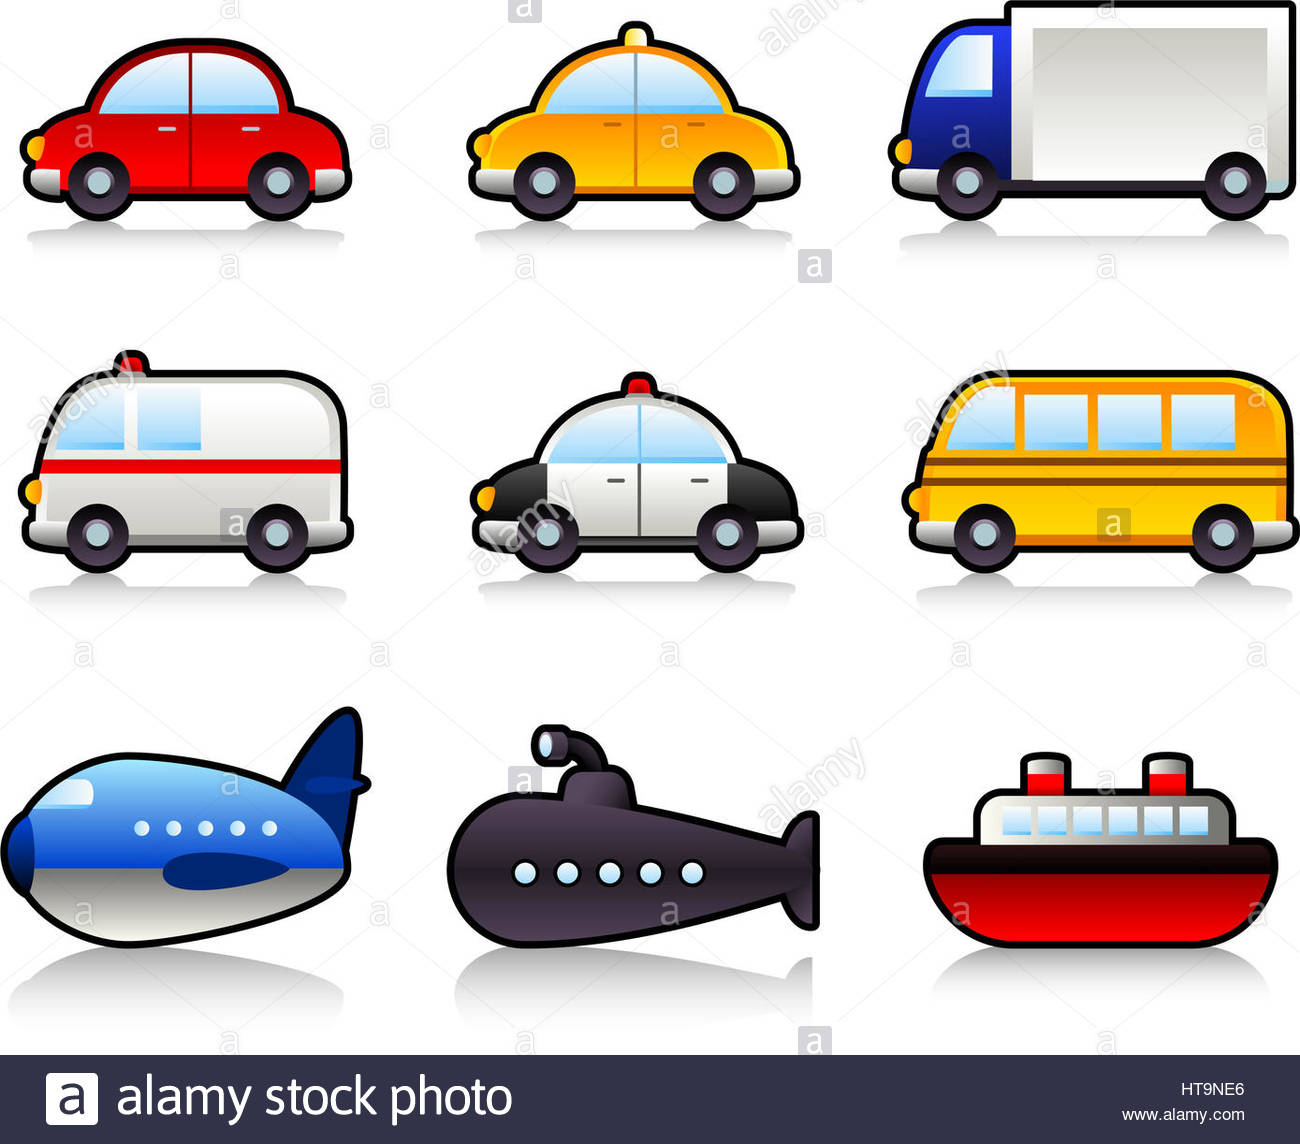 1300x1144 Transportation Passenger By All Means Of Transport. Vector Stock